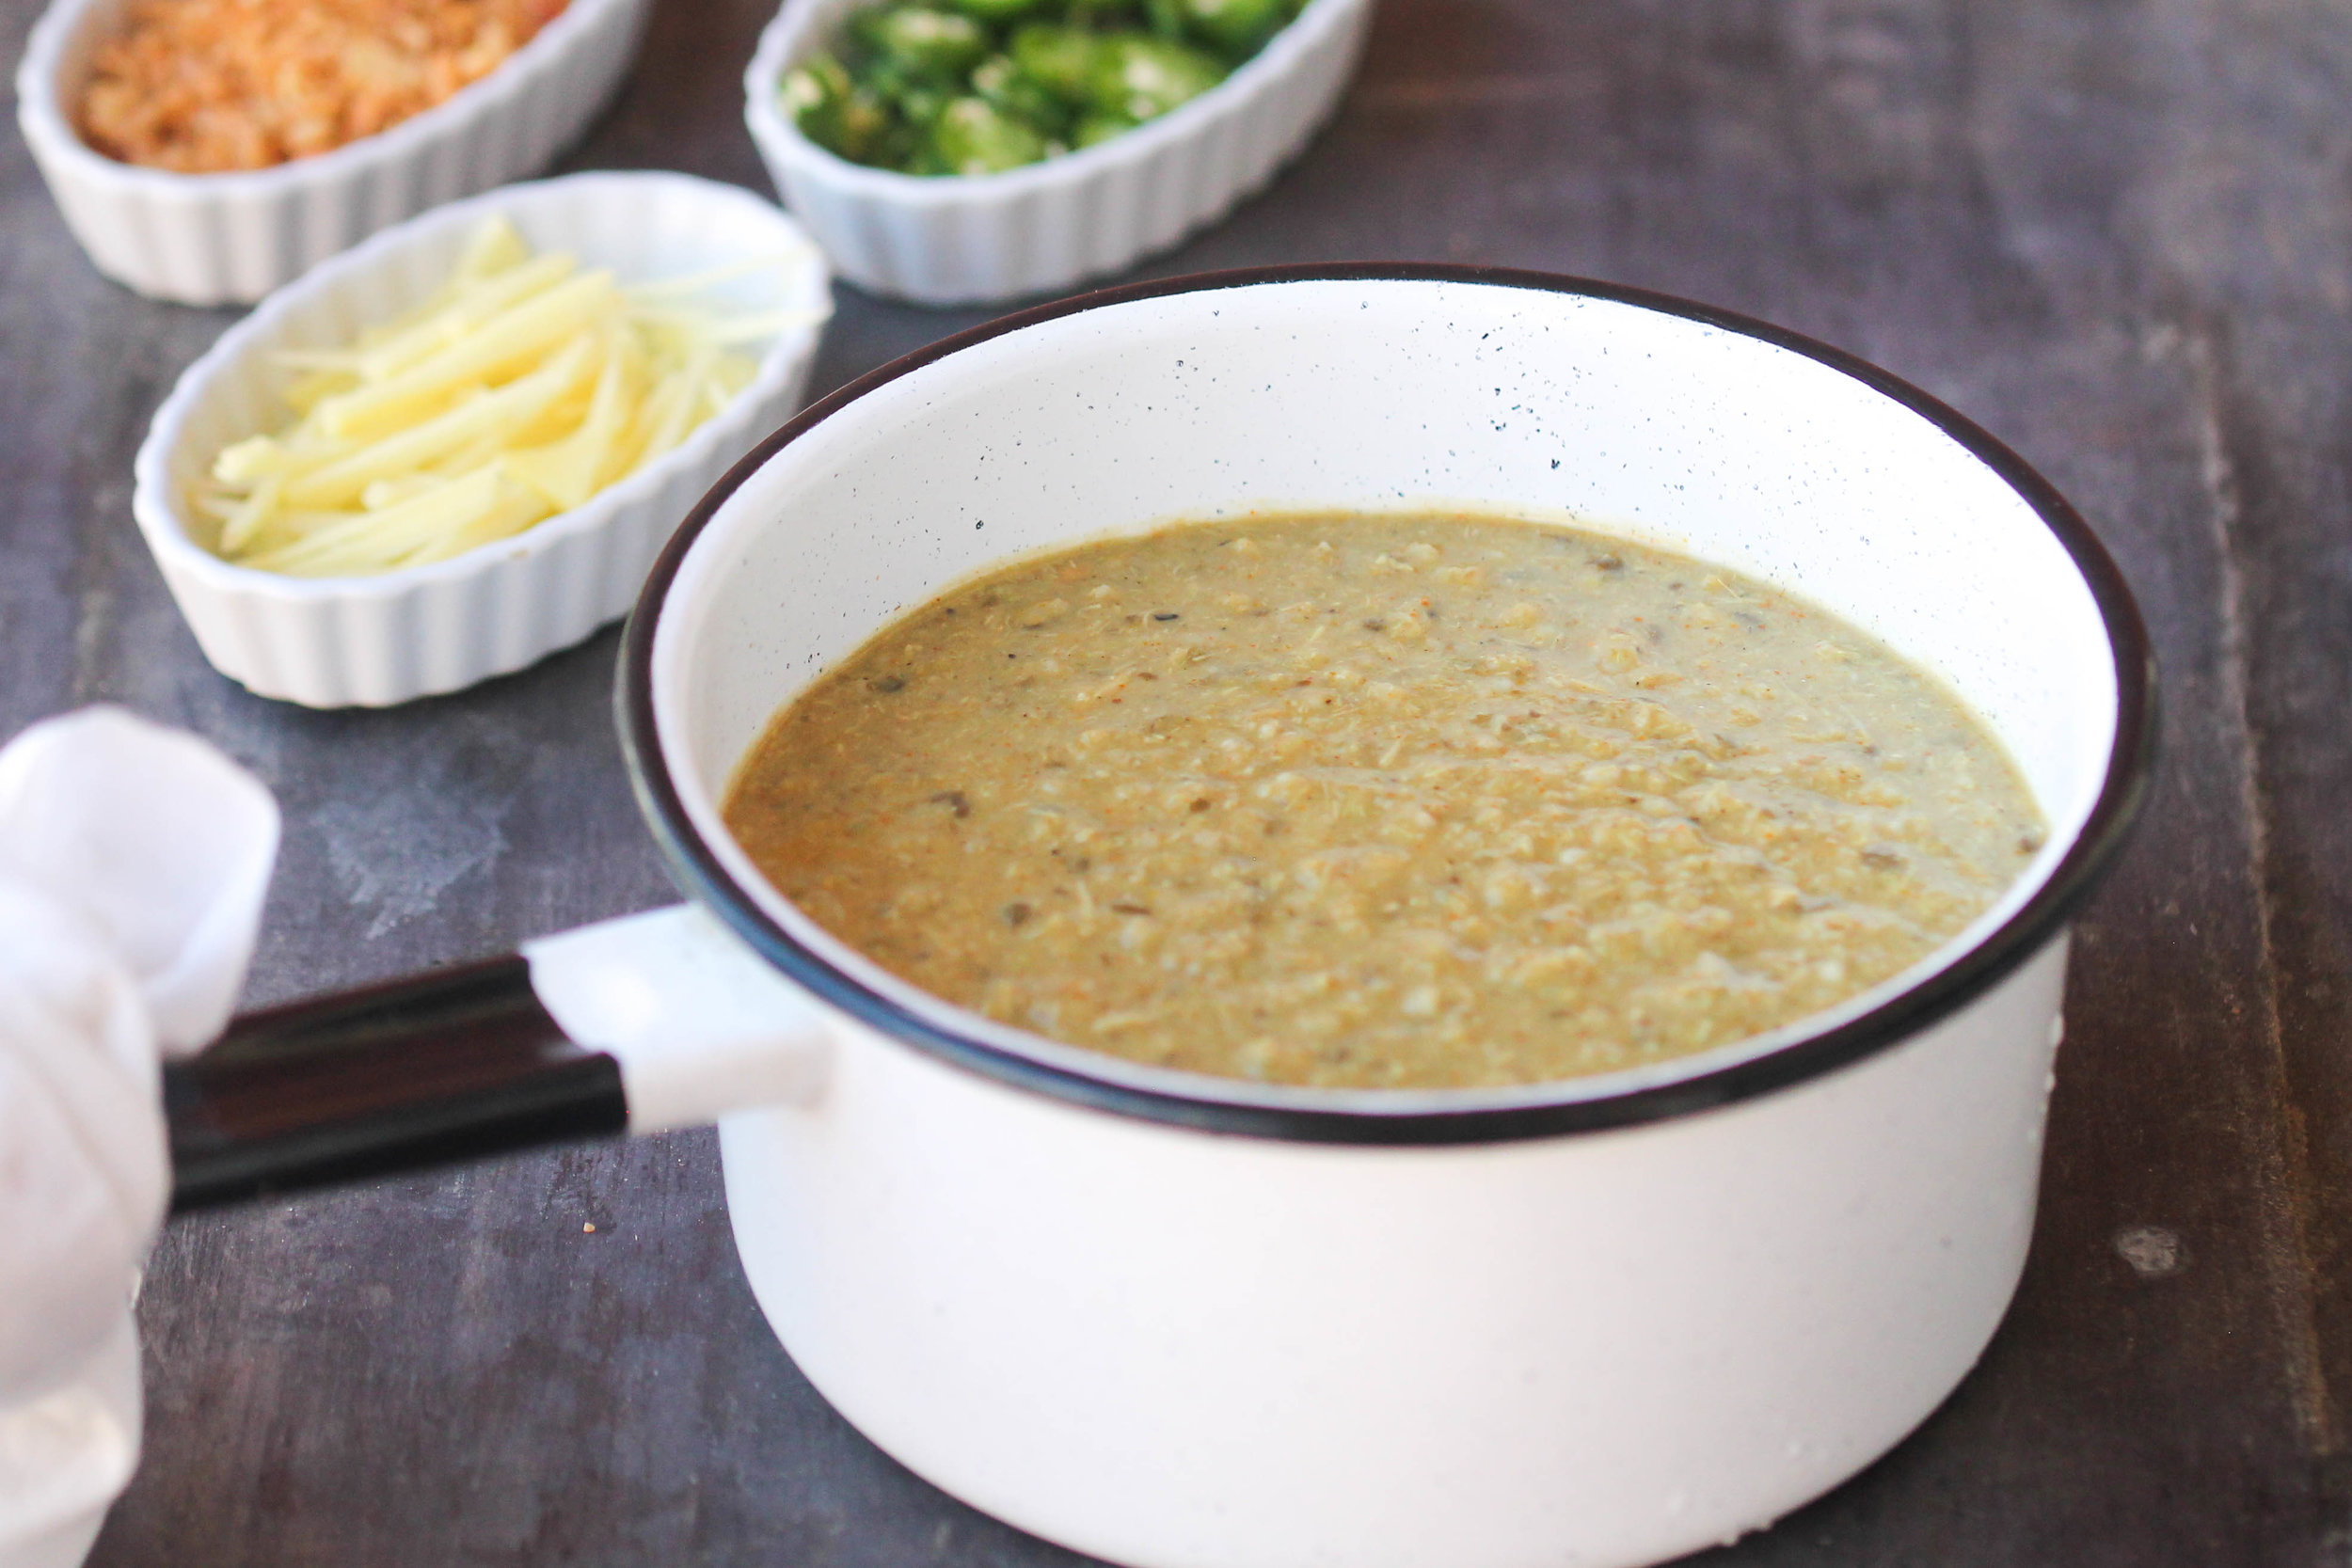 Easy Chicken Haleem is a thick stew with pureed grains, lentils, and chicken. It is very popular in the Indian sub-continent regions & Middle East.